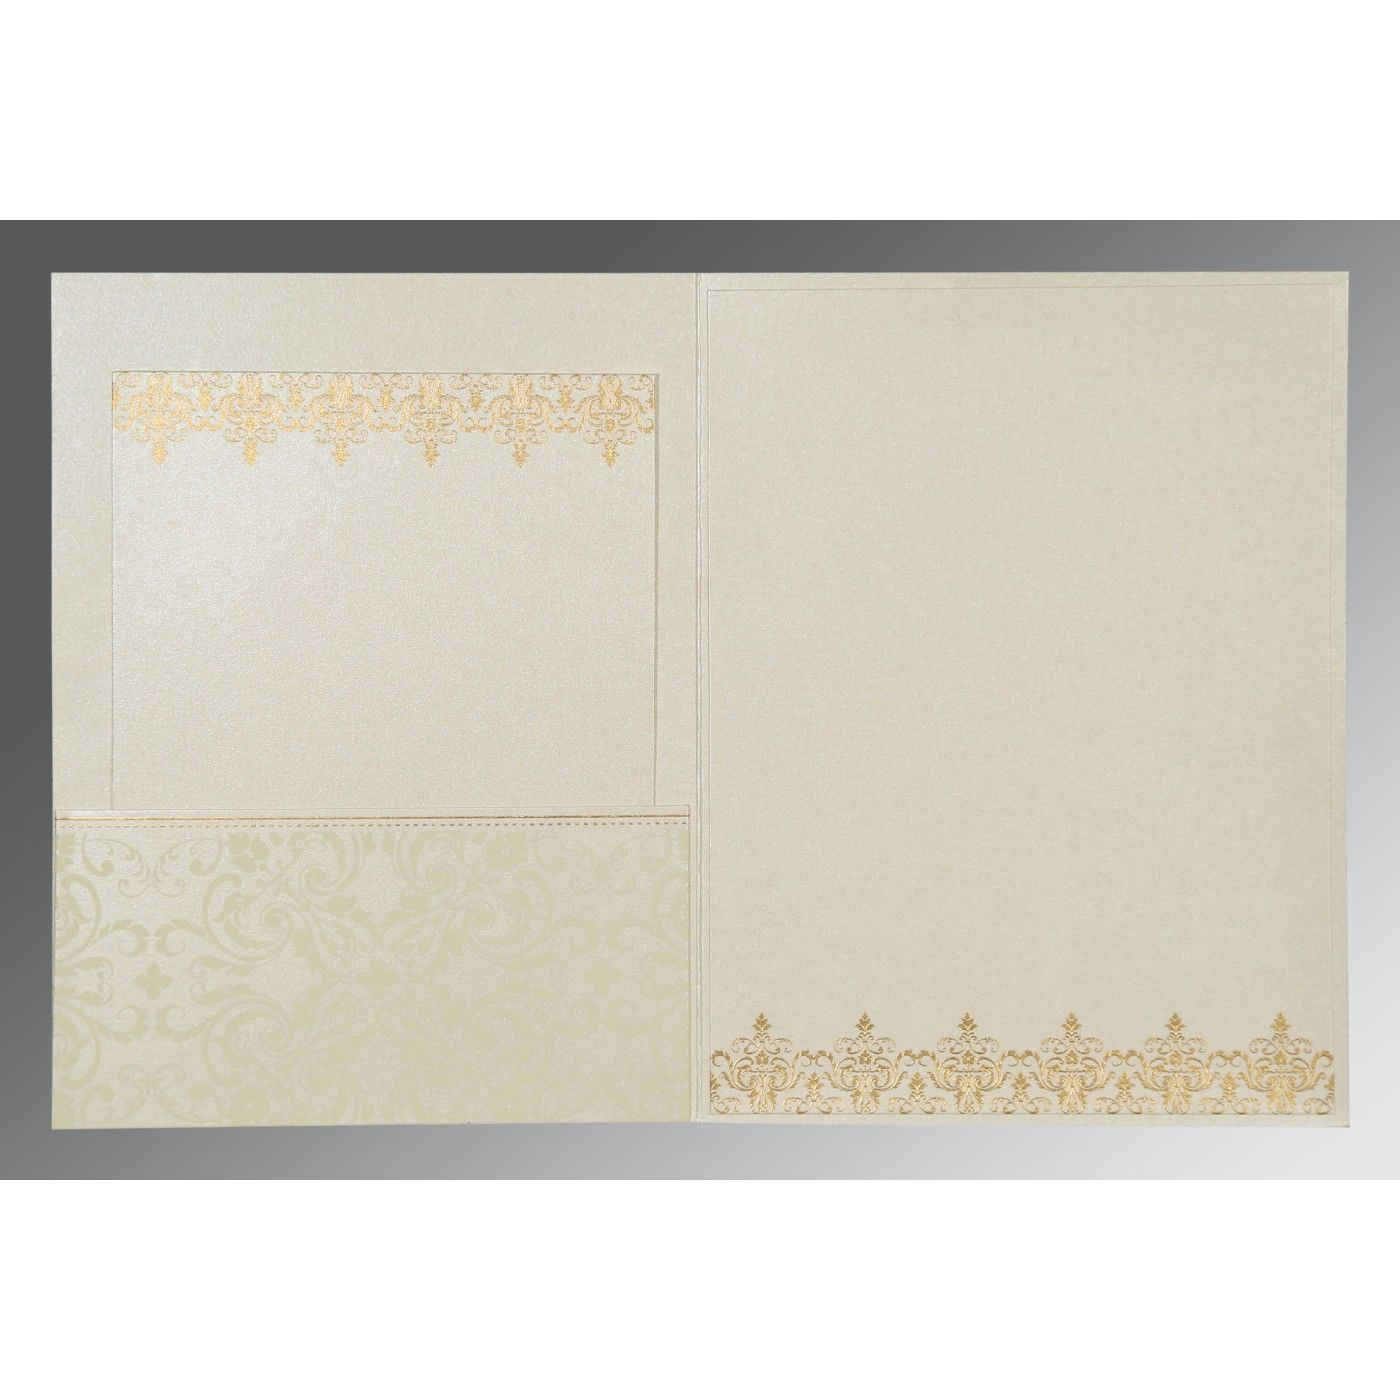 OFF-WHITE SHIMMERY SCREEN PRINTED WEDDING CARD : CSO-8244B - IndianWeddingCards